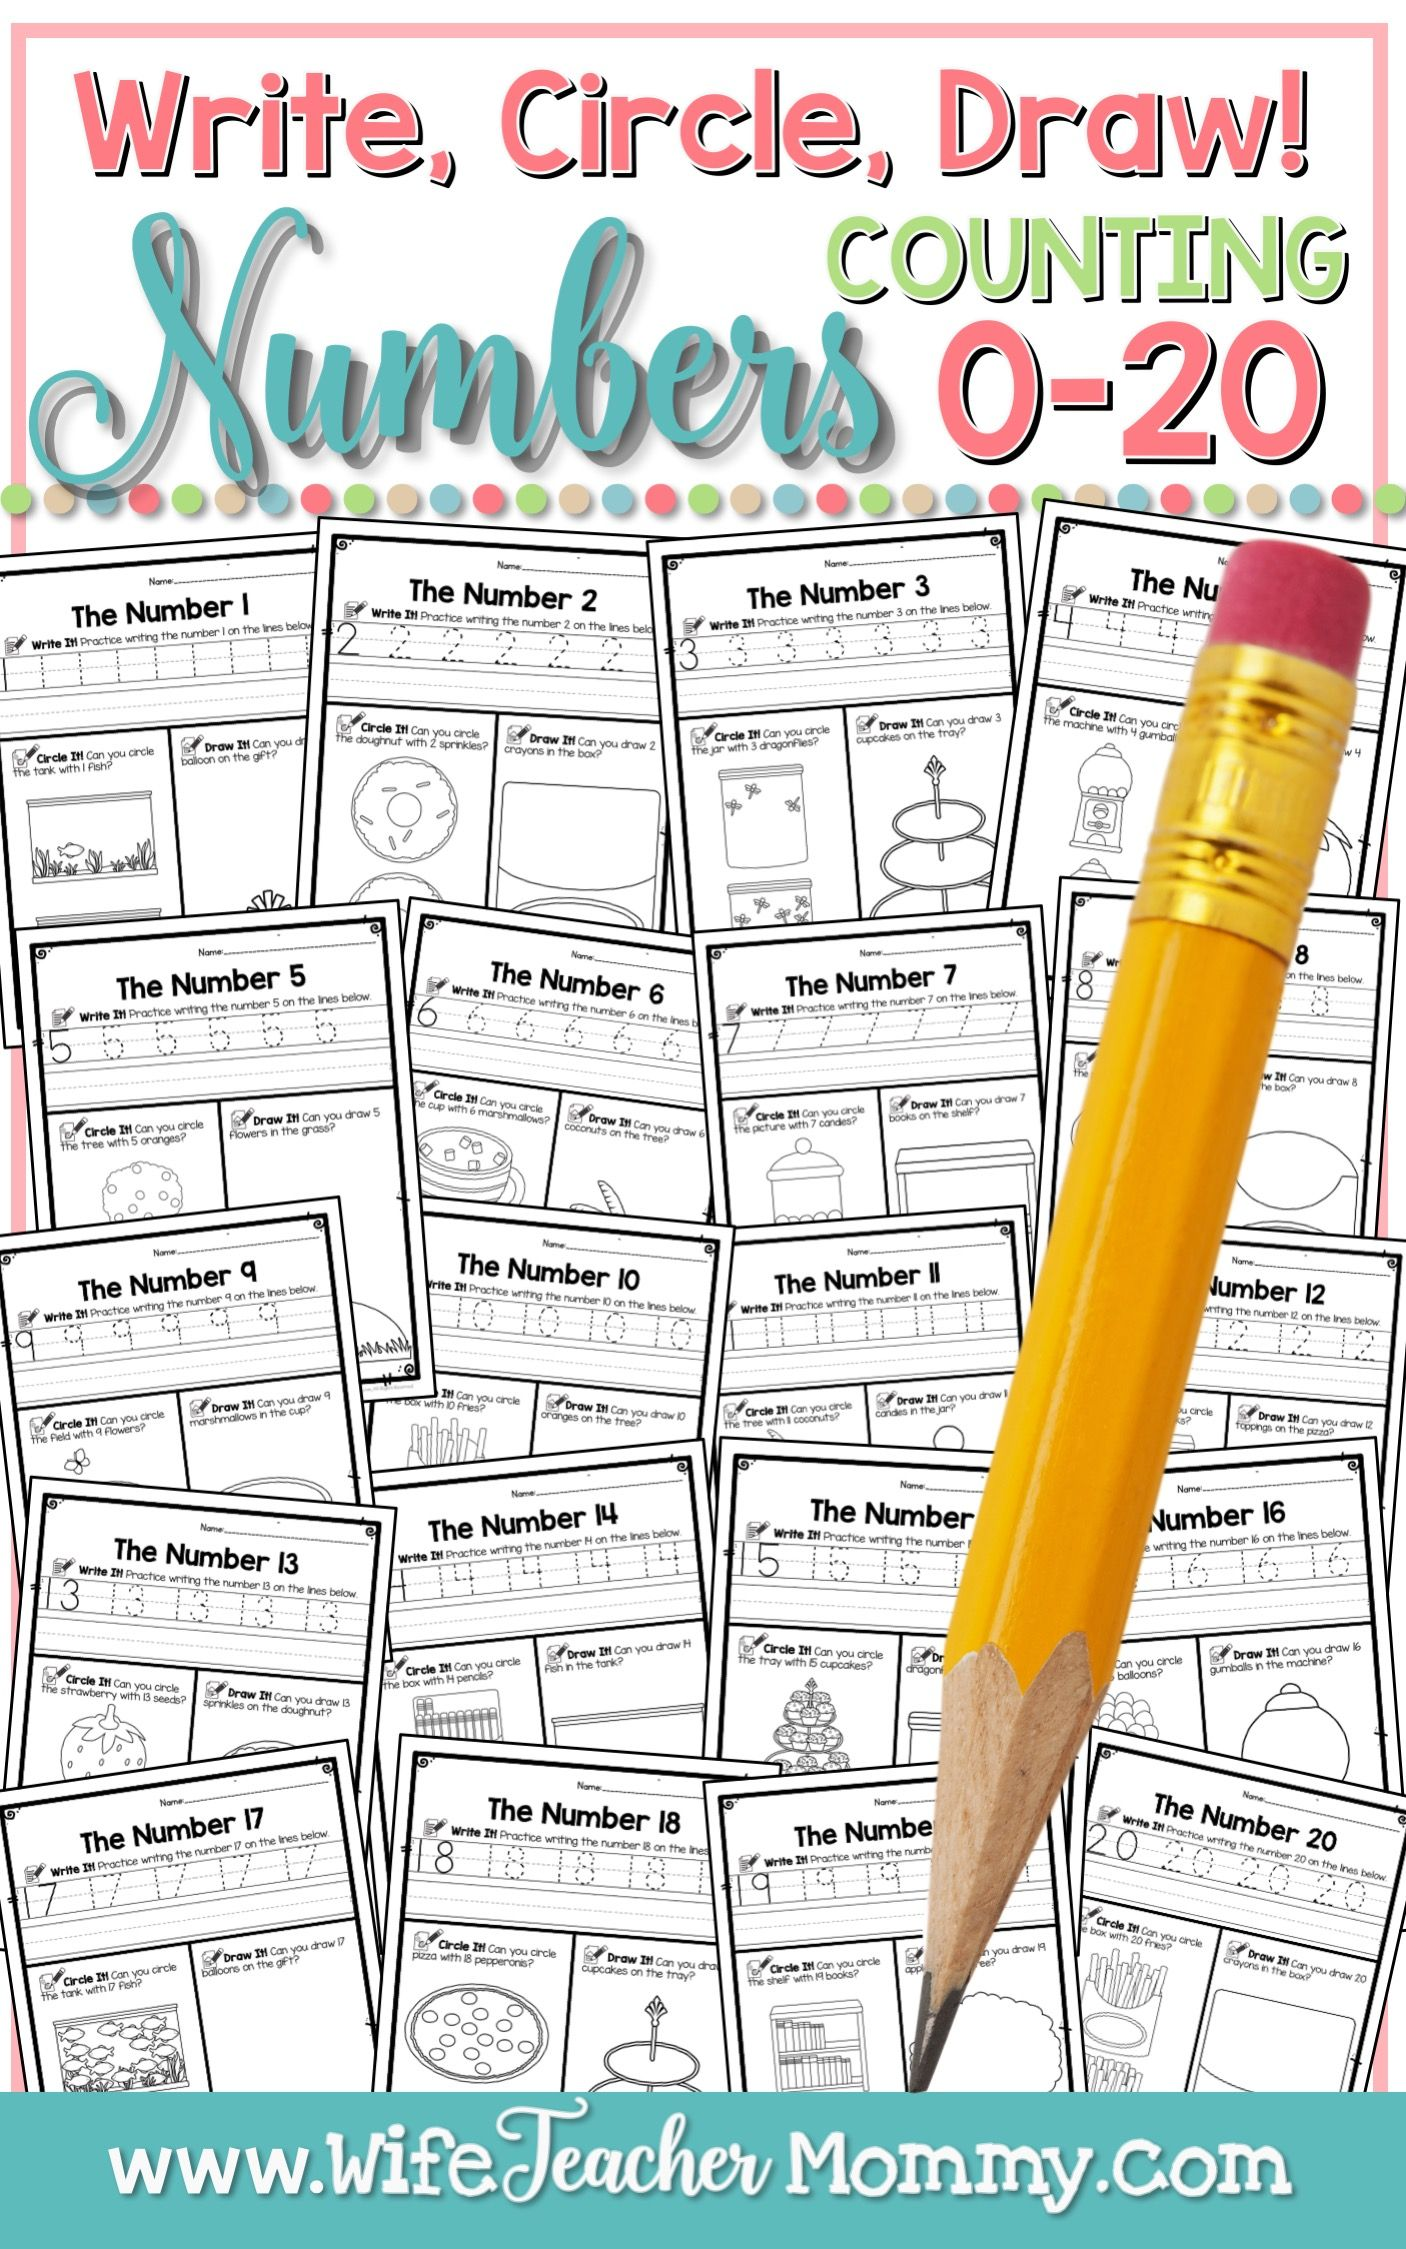 Number Worksheets 0 20 Counting Worksheets Write Circle